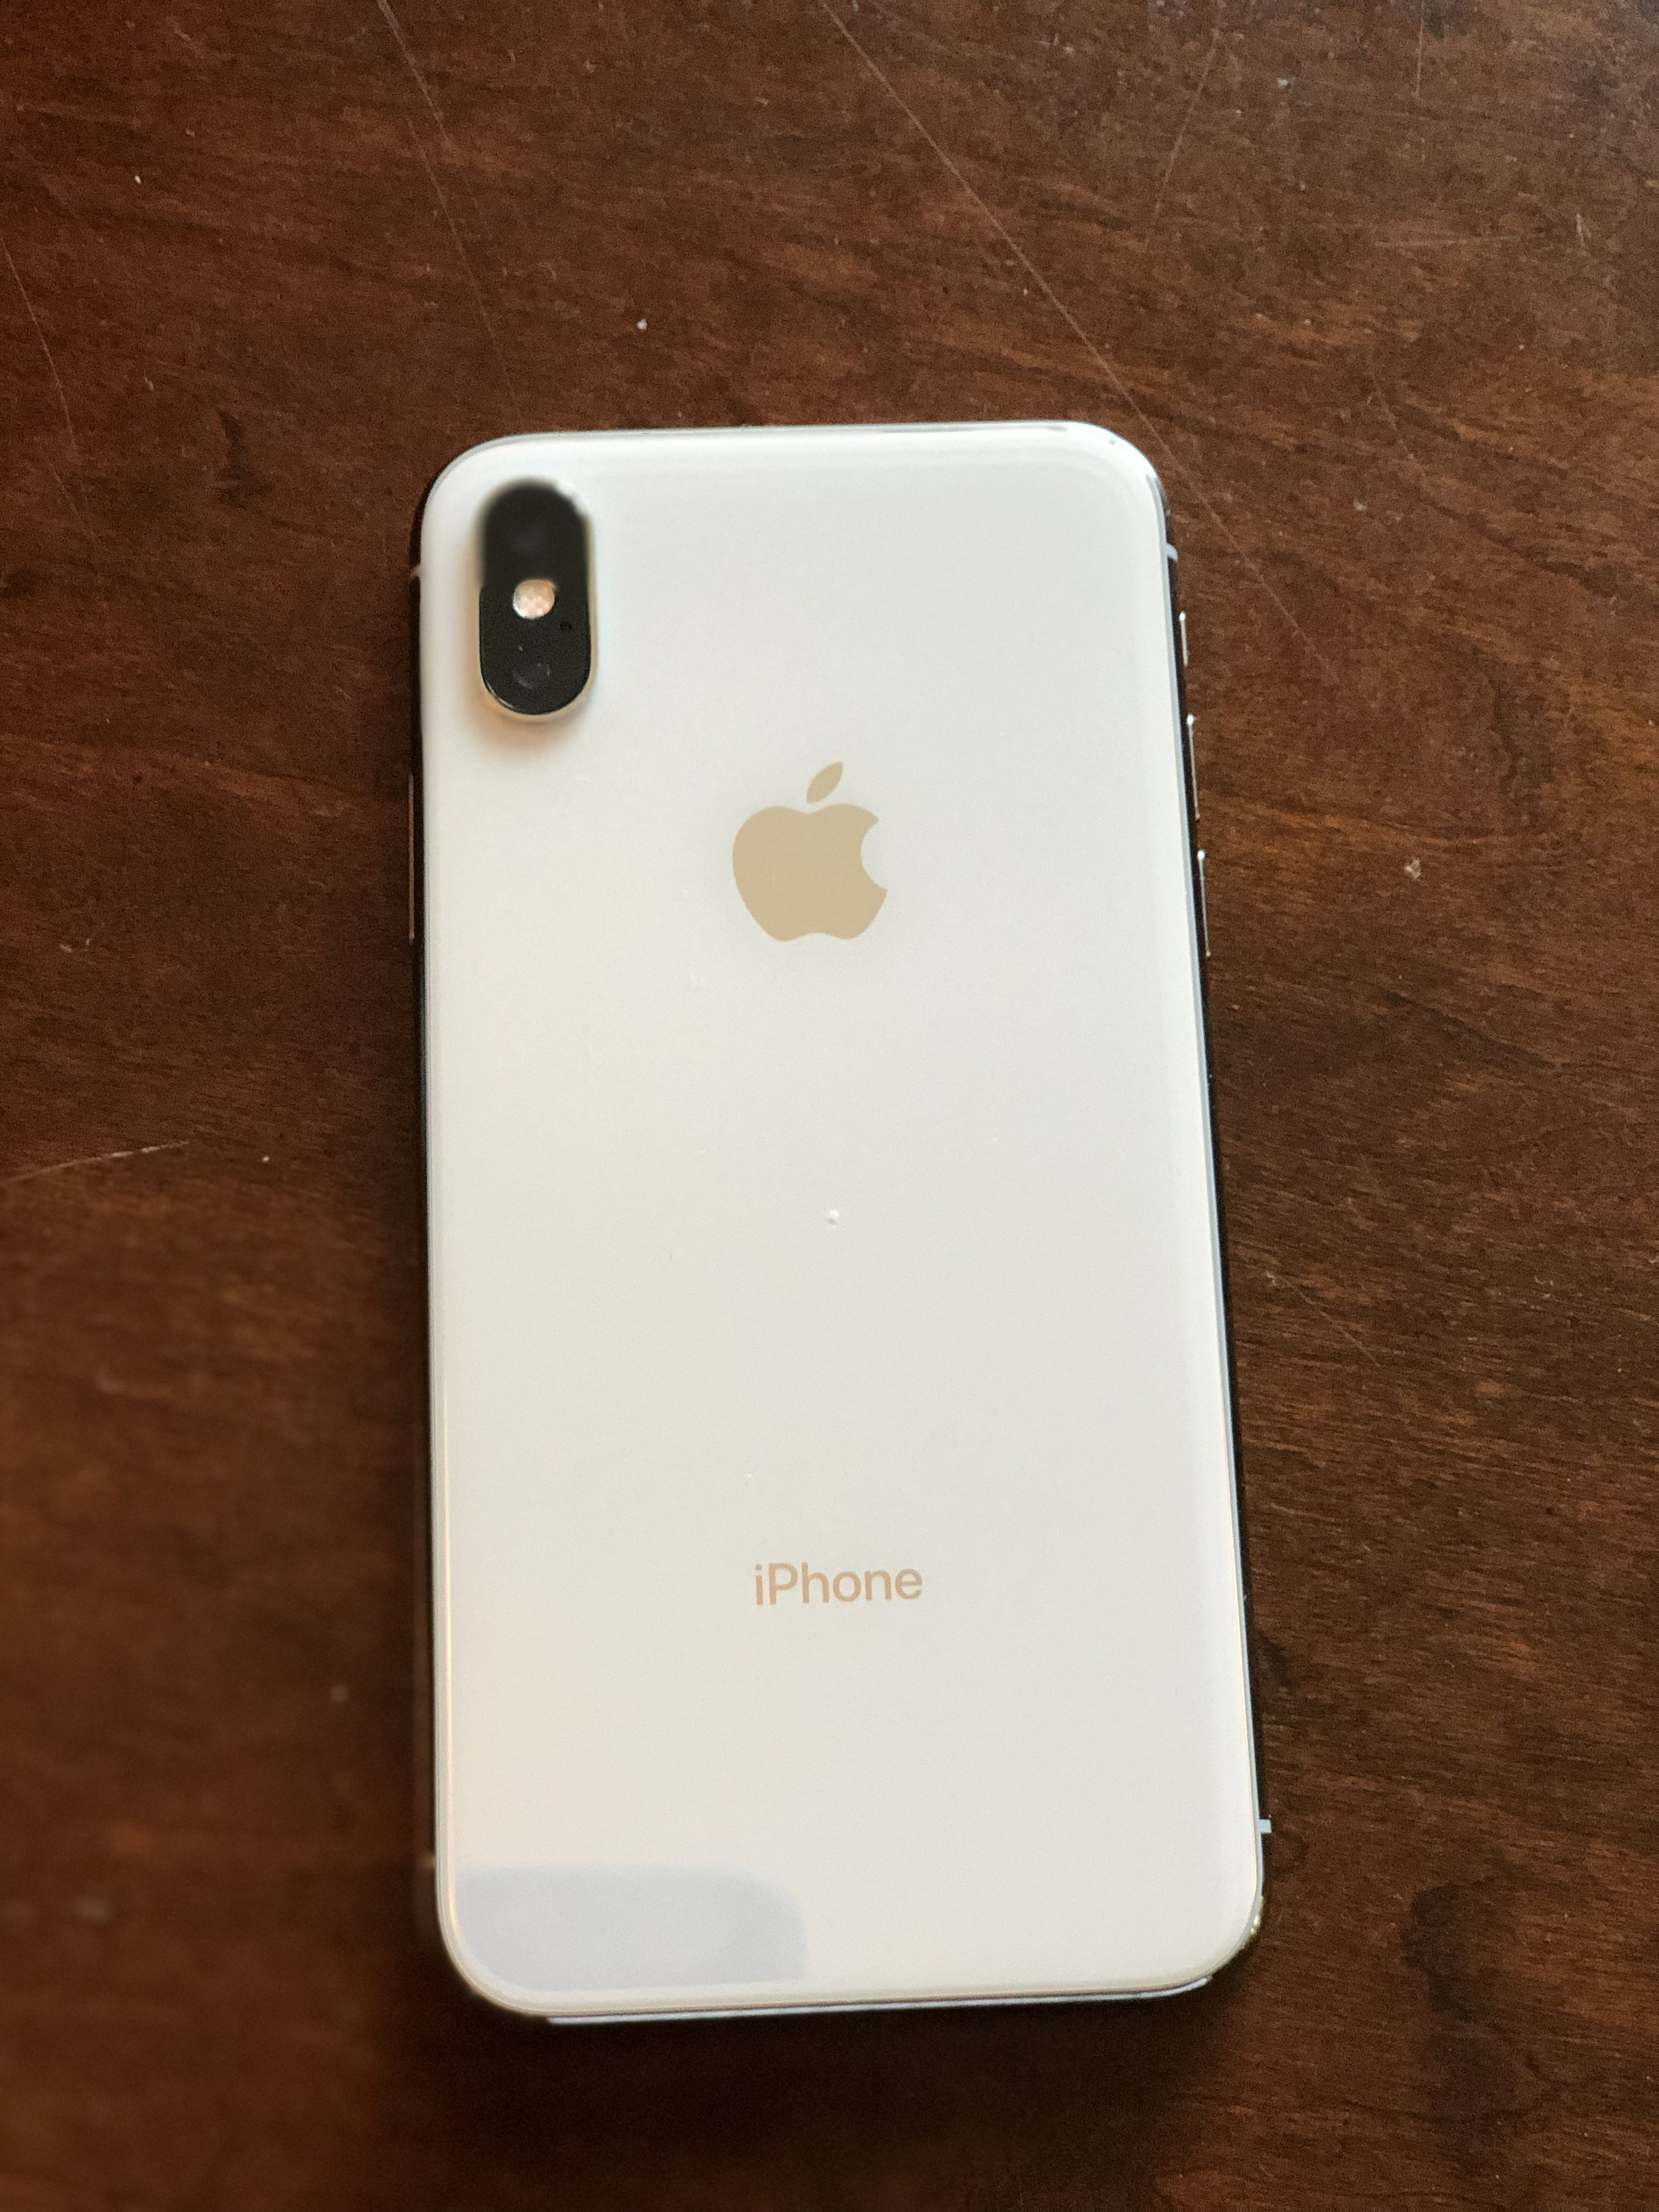 Meet the iphone X - Smile for the Face ID!